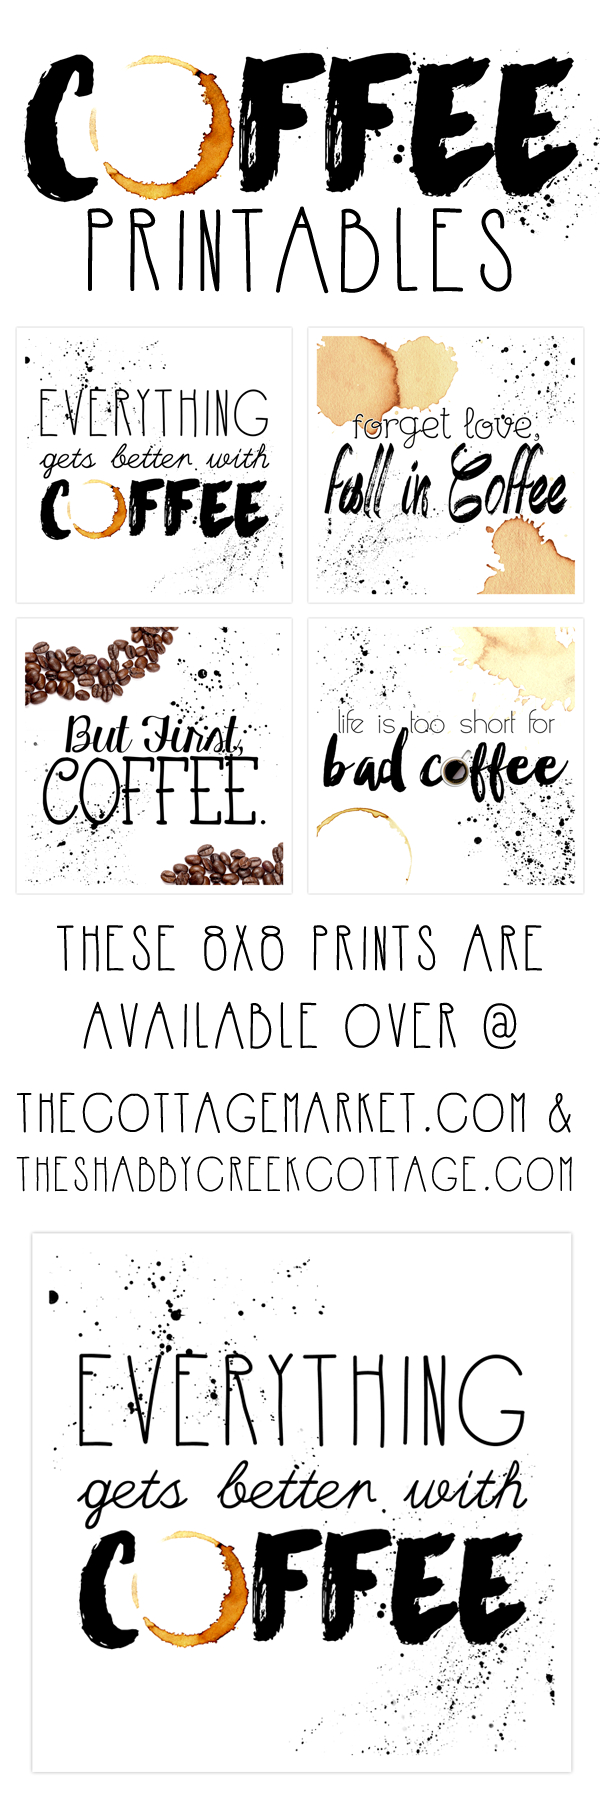 Free Printable Art: The Coffee Collection - The Cottage Market - Free Printable Coffee Bar Signs